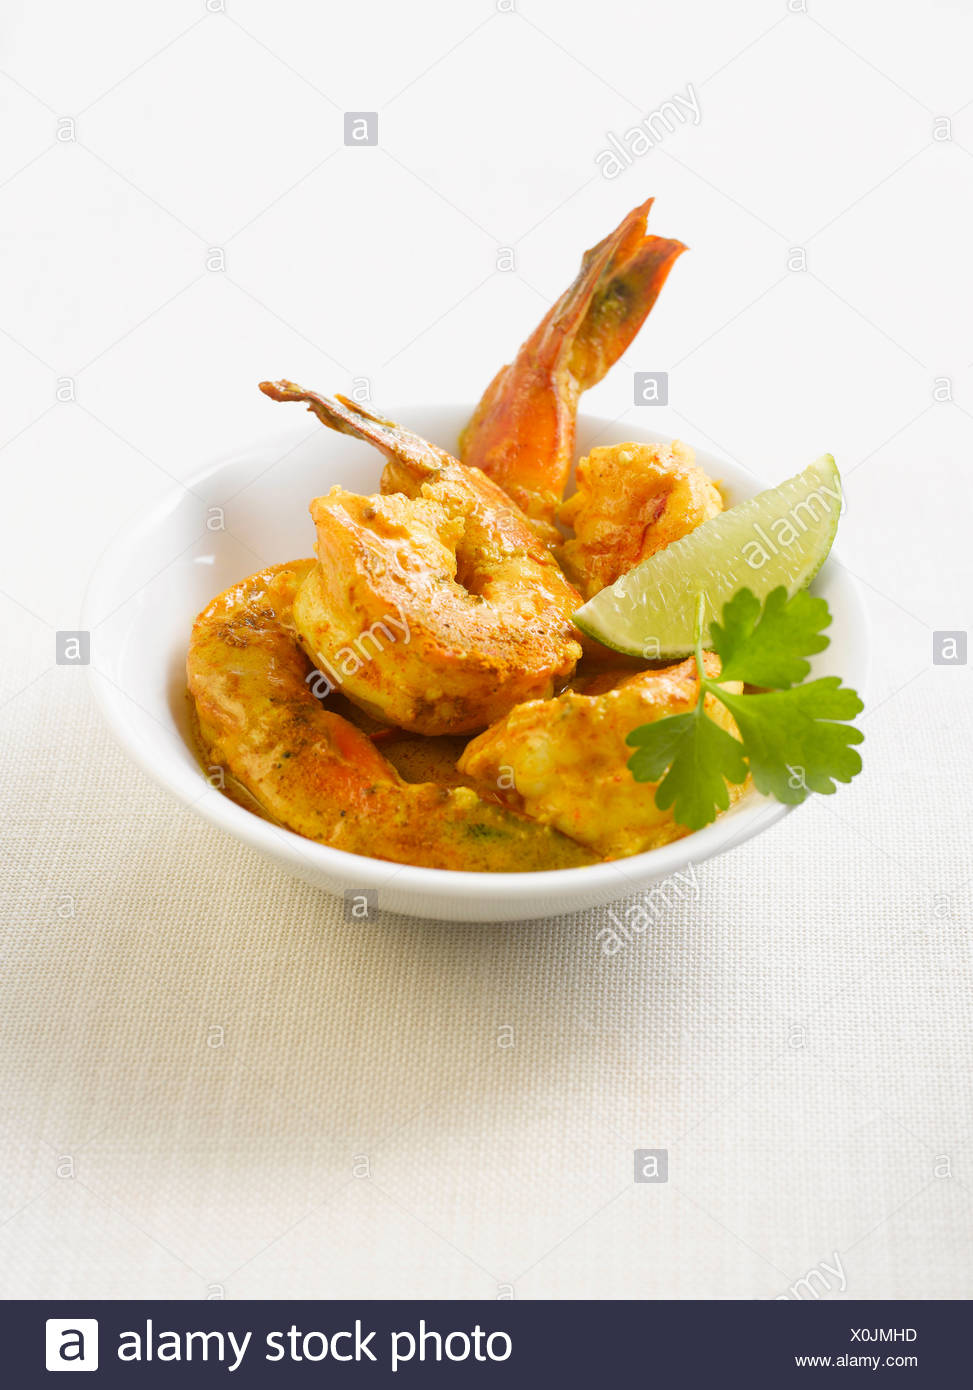 King prawns in curry marinade with lemon slices on plate - Stock Image